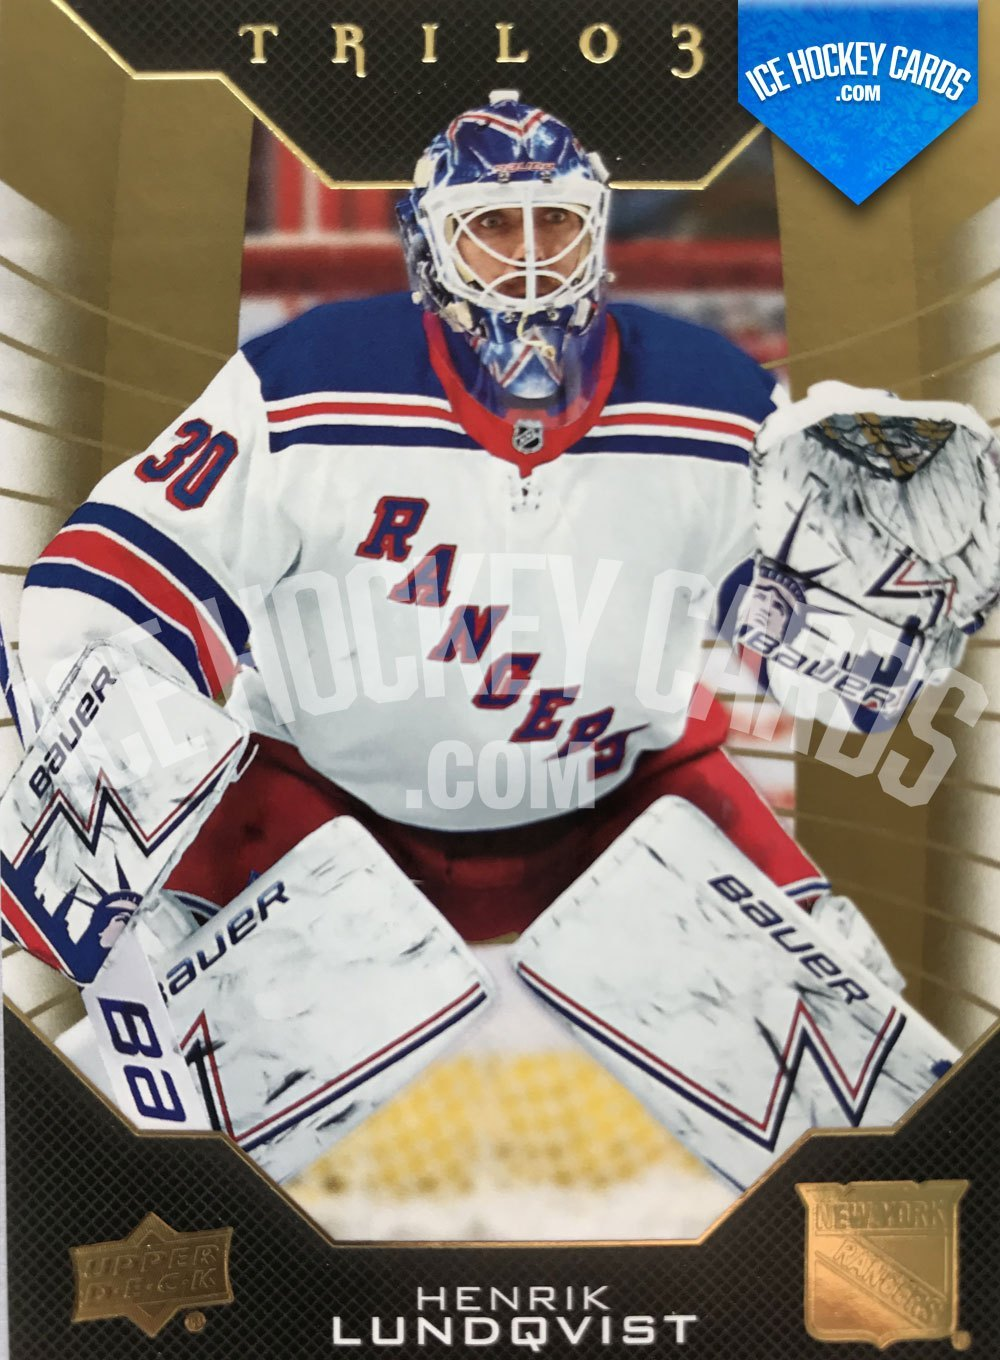 Upper Deck - Trilogy 19-20 - Henrik Lundqvist Base Card